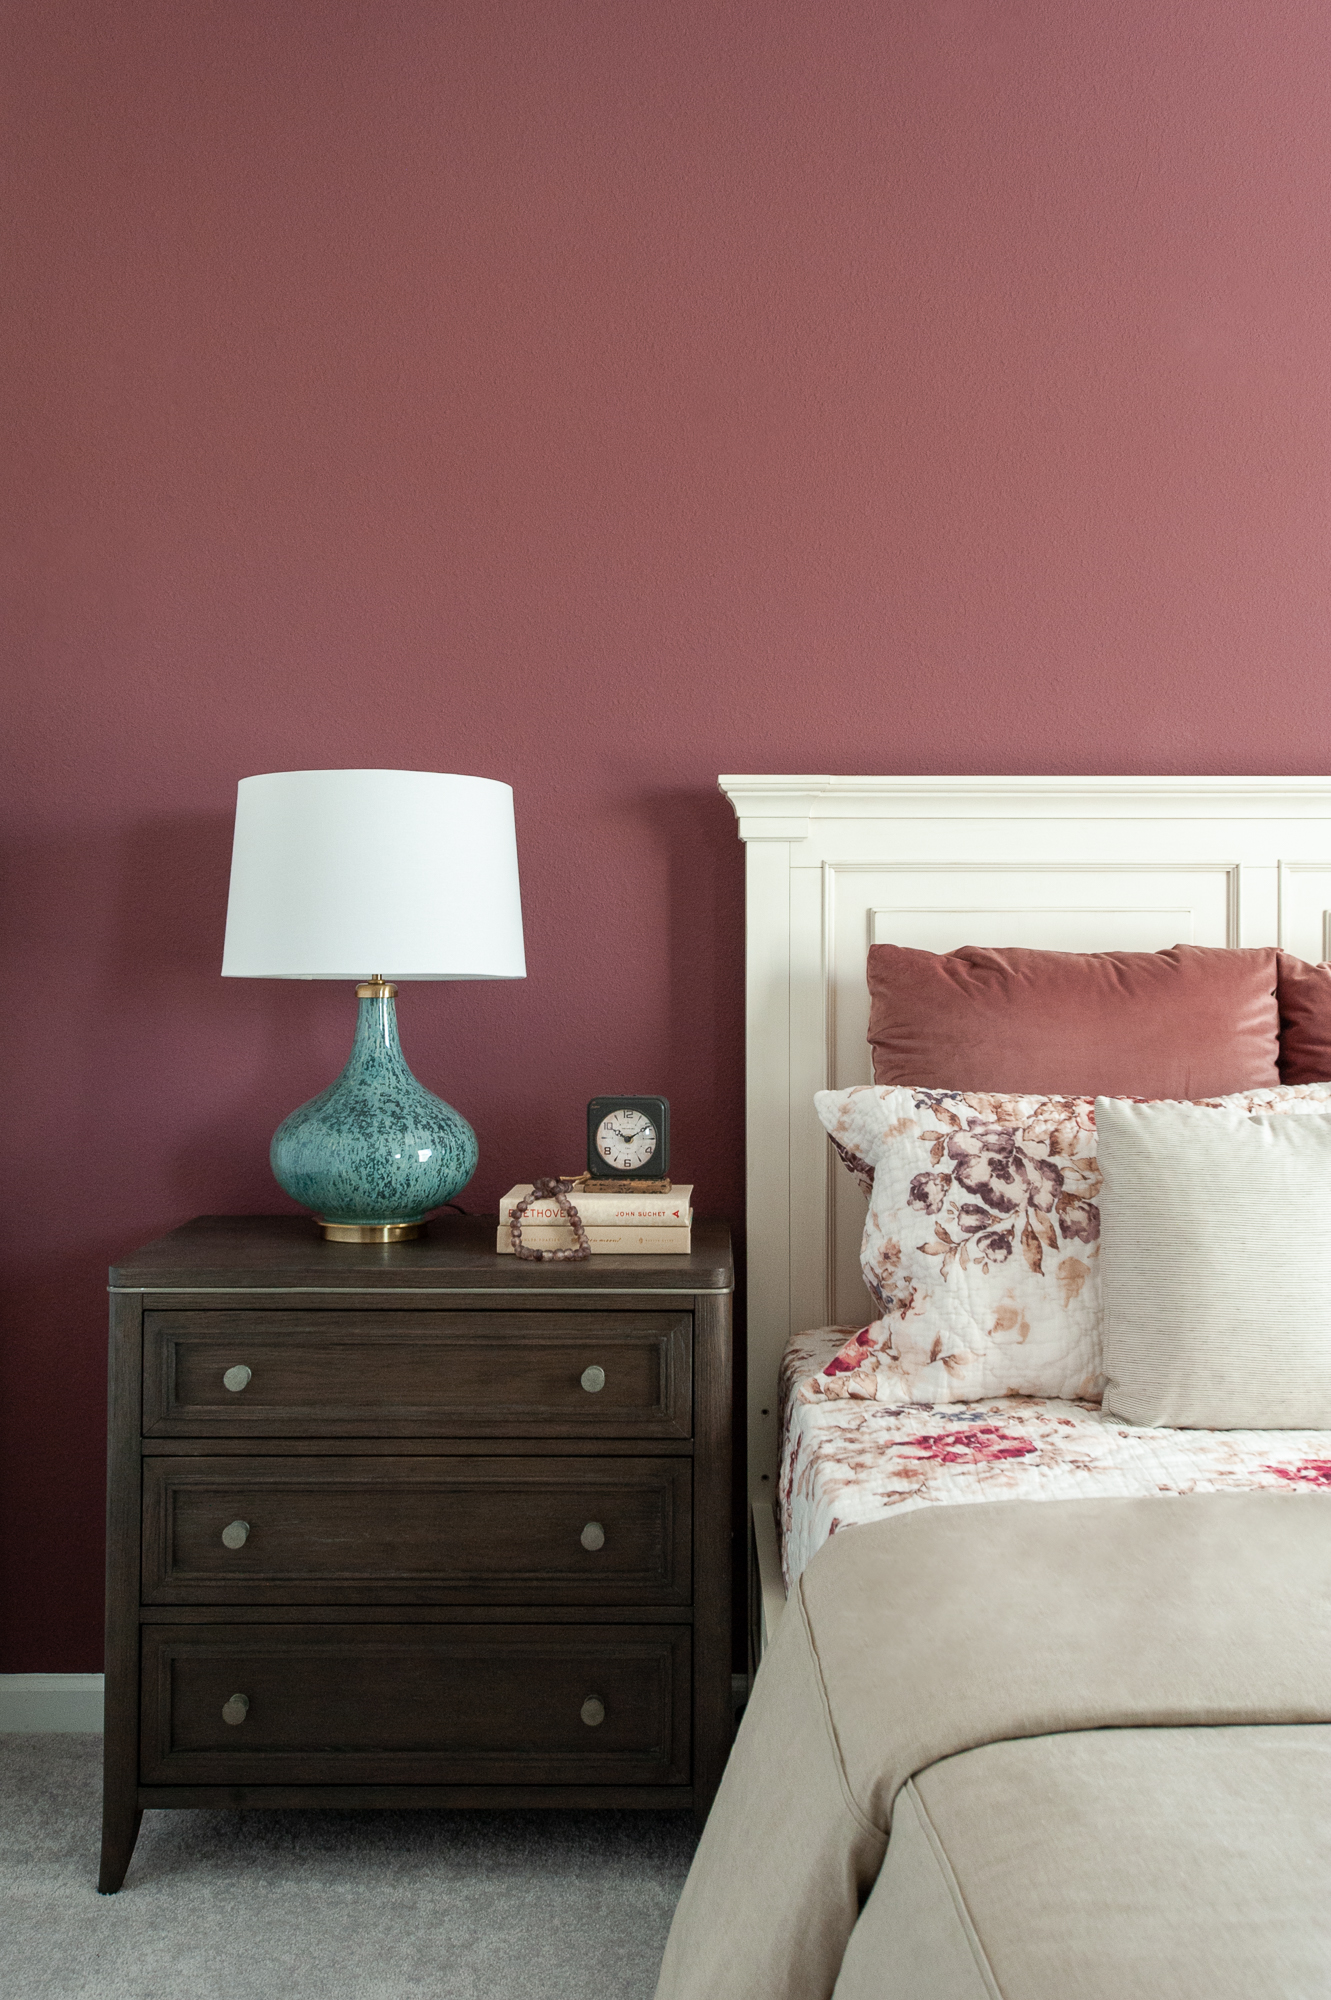 Micamy_Interior Designer_Design_Interior_Model_Merchandising_Guest Bedroom_Accent Wall_Uttemrost_UniversalFurniture_Schumacher_AmityBedding_Lennar_Blog_Blue.jpg